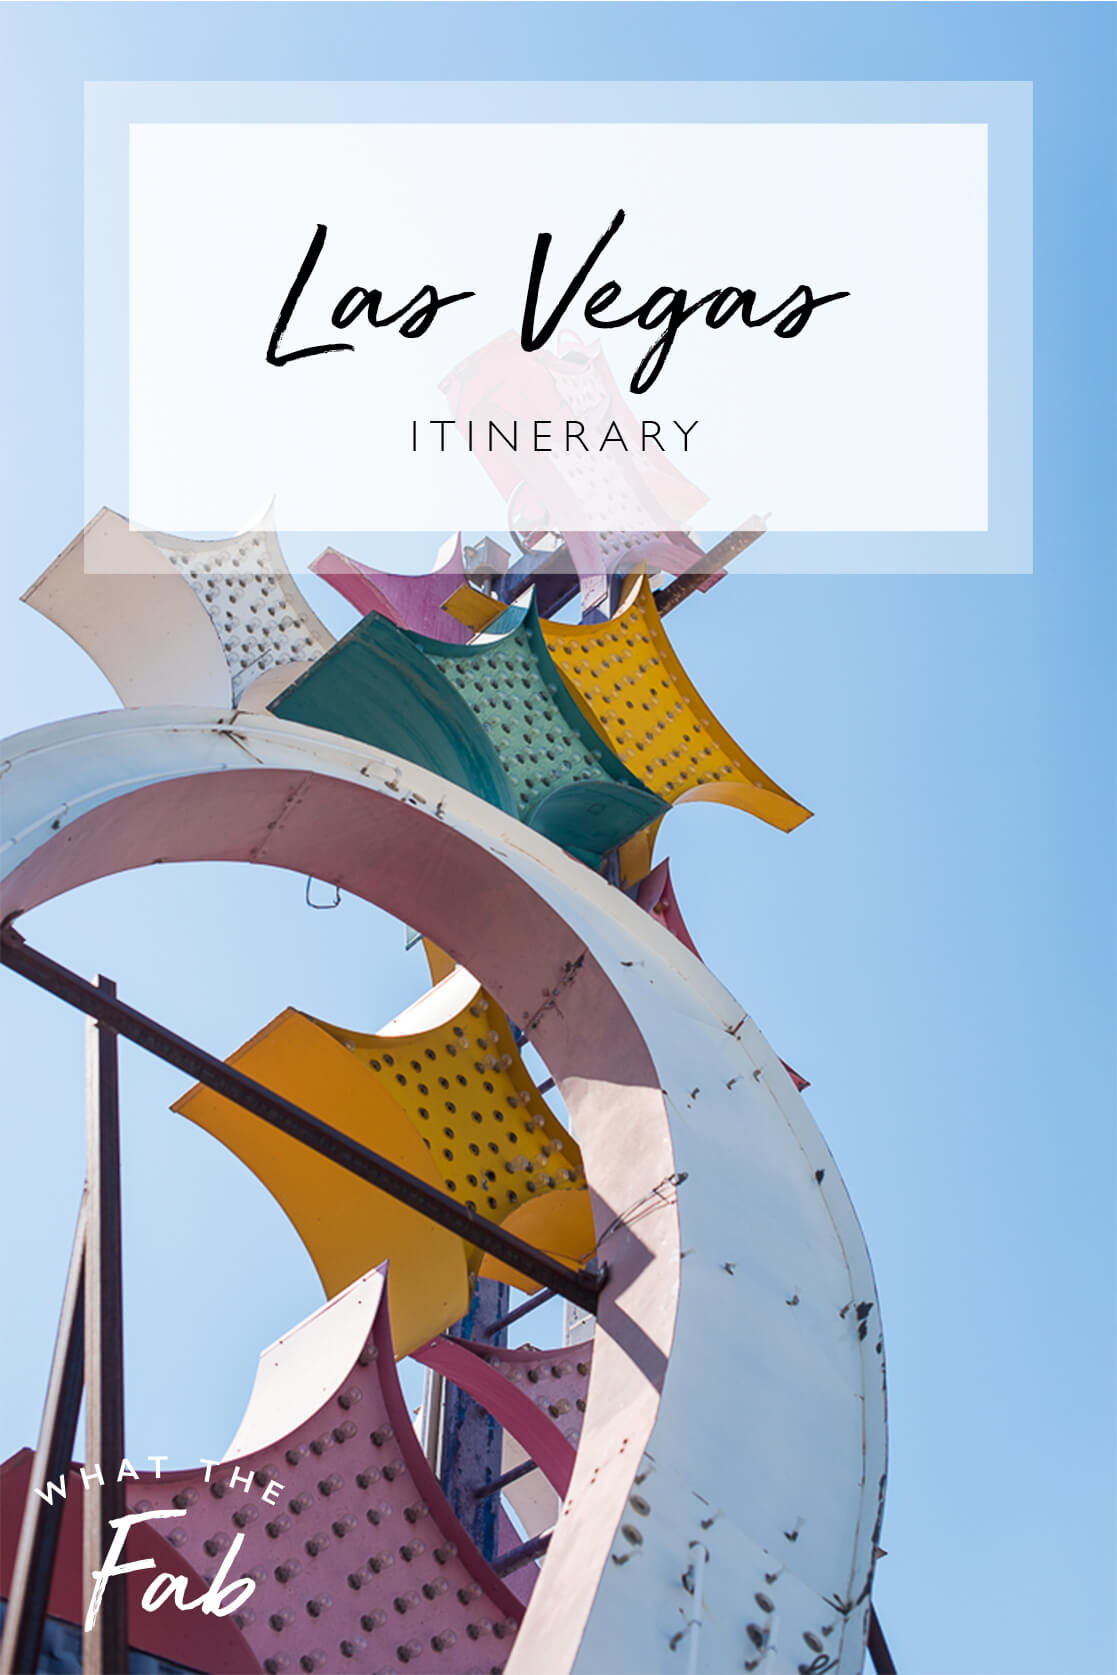 Las Vegas Itinerary, by Travel Blogger What The Fab